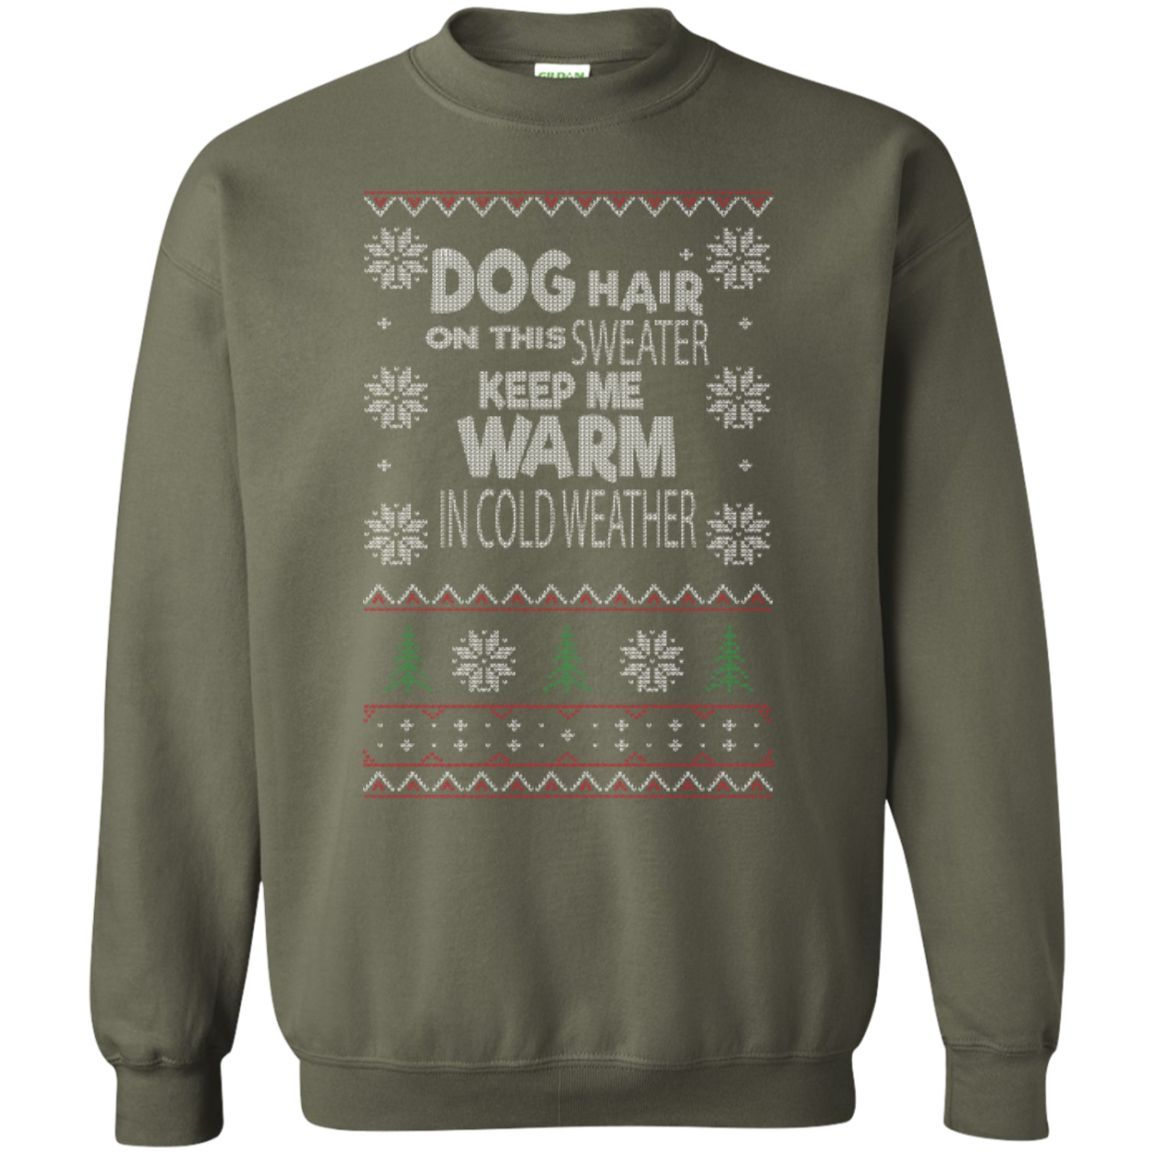 Dog Hair On This Sweater Keep Me Warm In Cold Weather - Printed Crewneck Pullover Sweatshirt 8 oz